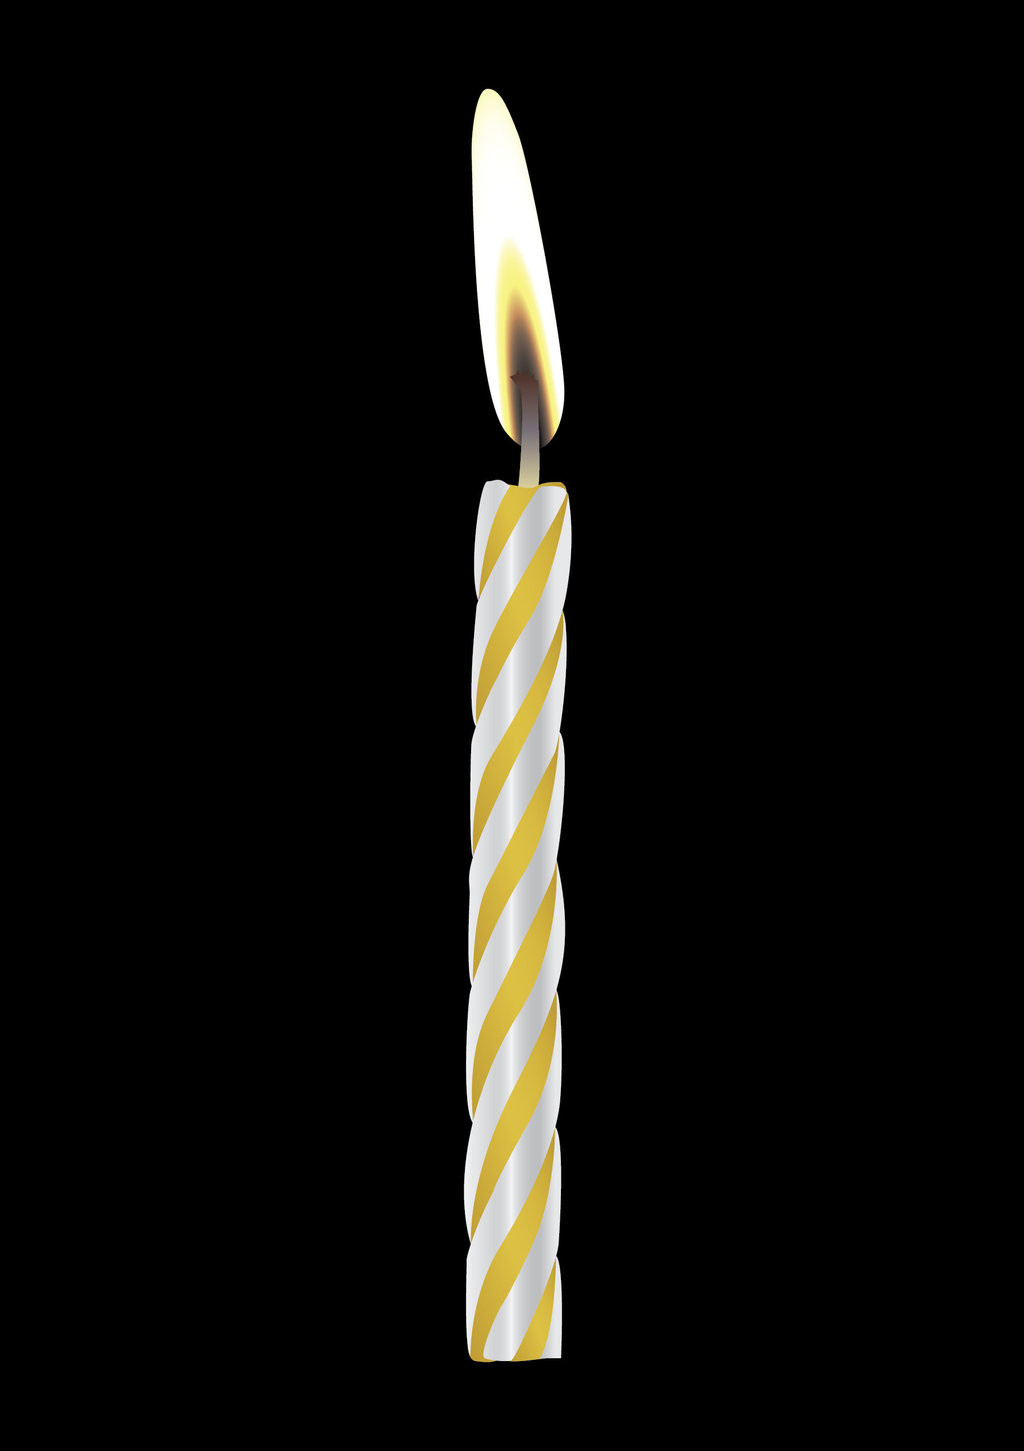 Birthday Candles In Png image #31033